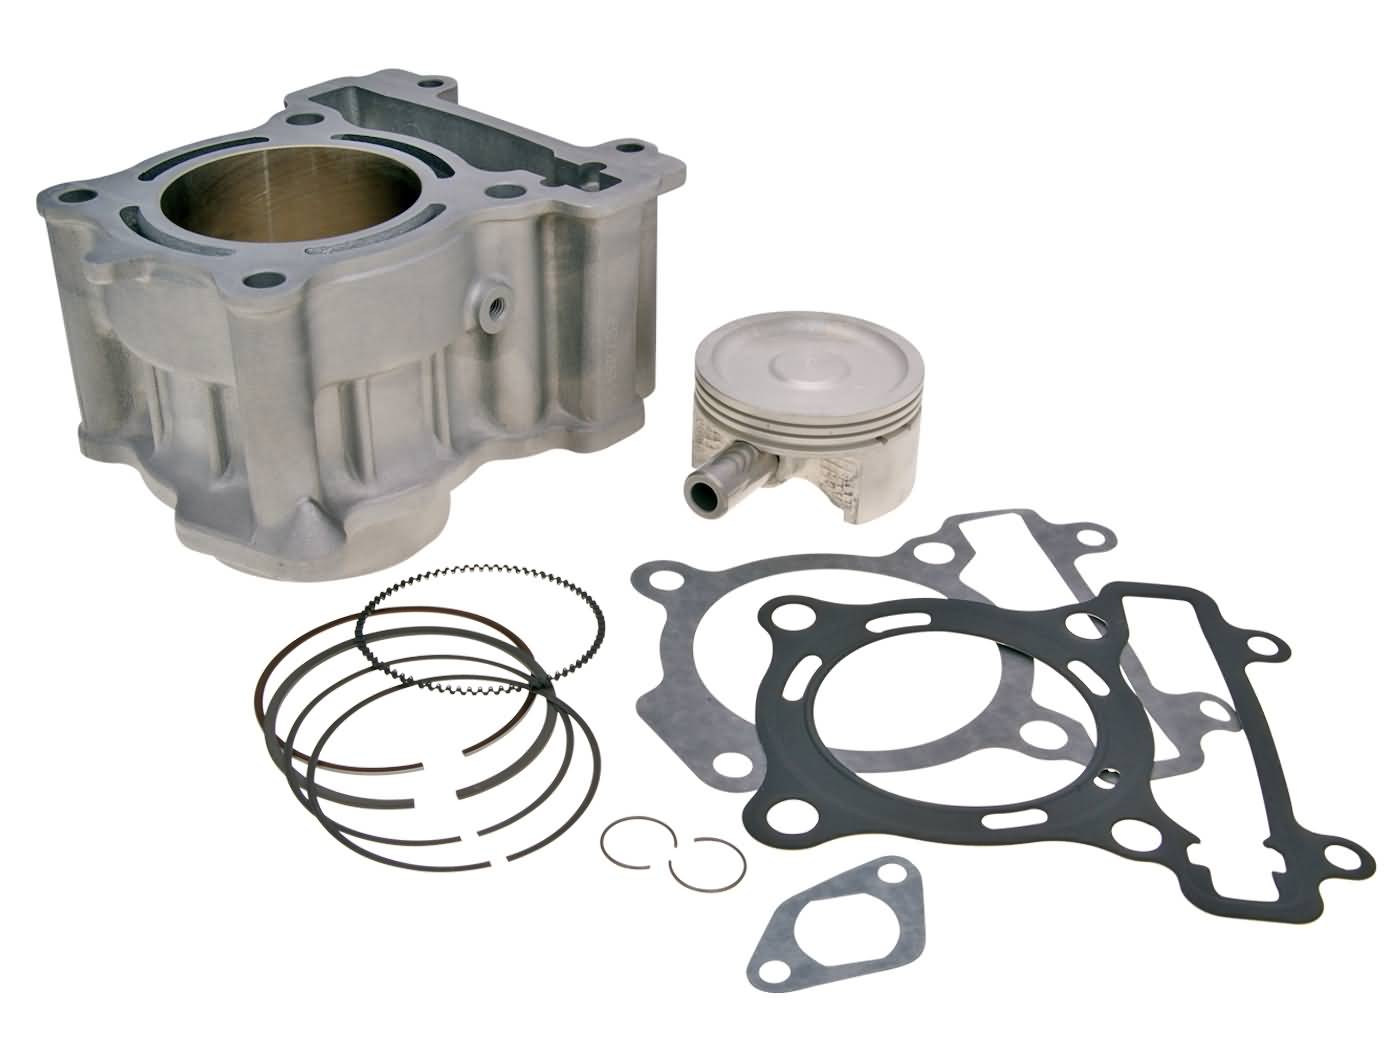 cylinder kit malossi i tech 180cc for yamaha wr yzf r 125cc 4t lc scooter parts racing. Black Bedroom Furniture Sets. Home Design Ideas